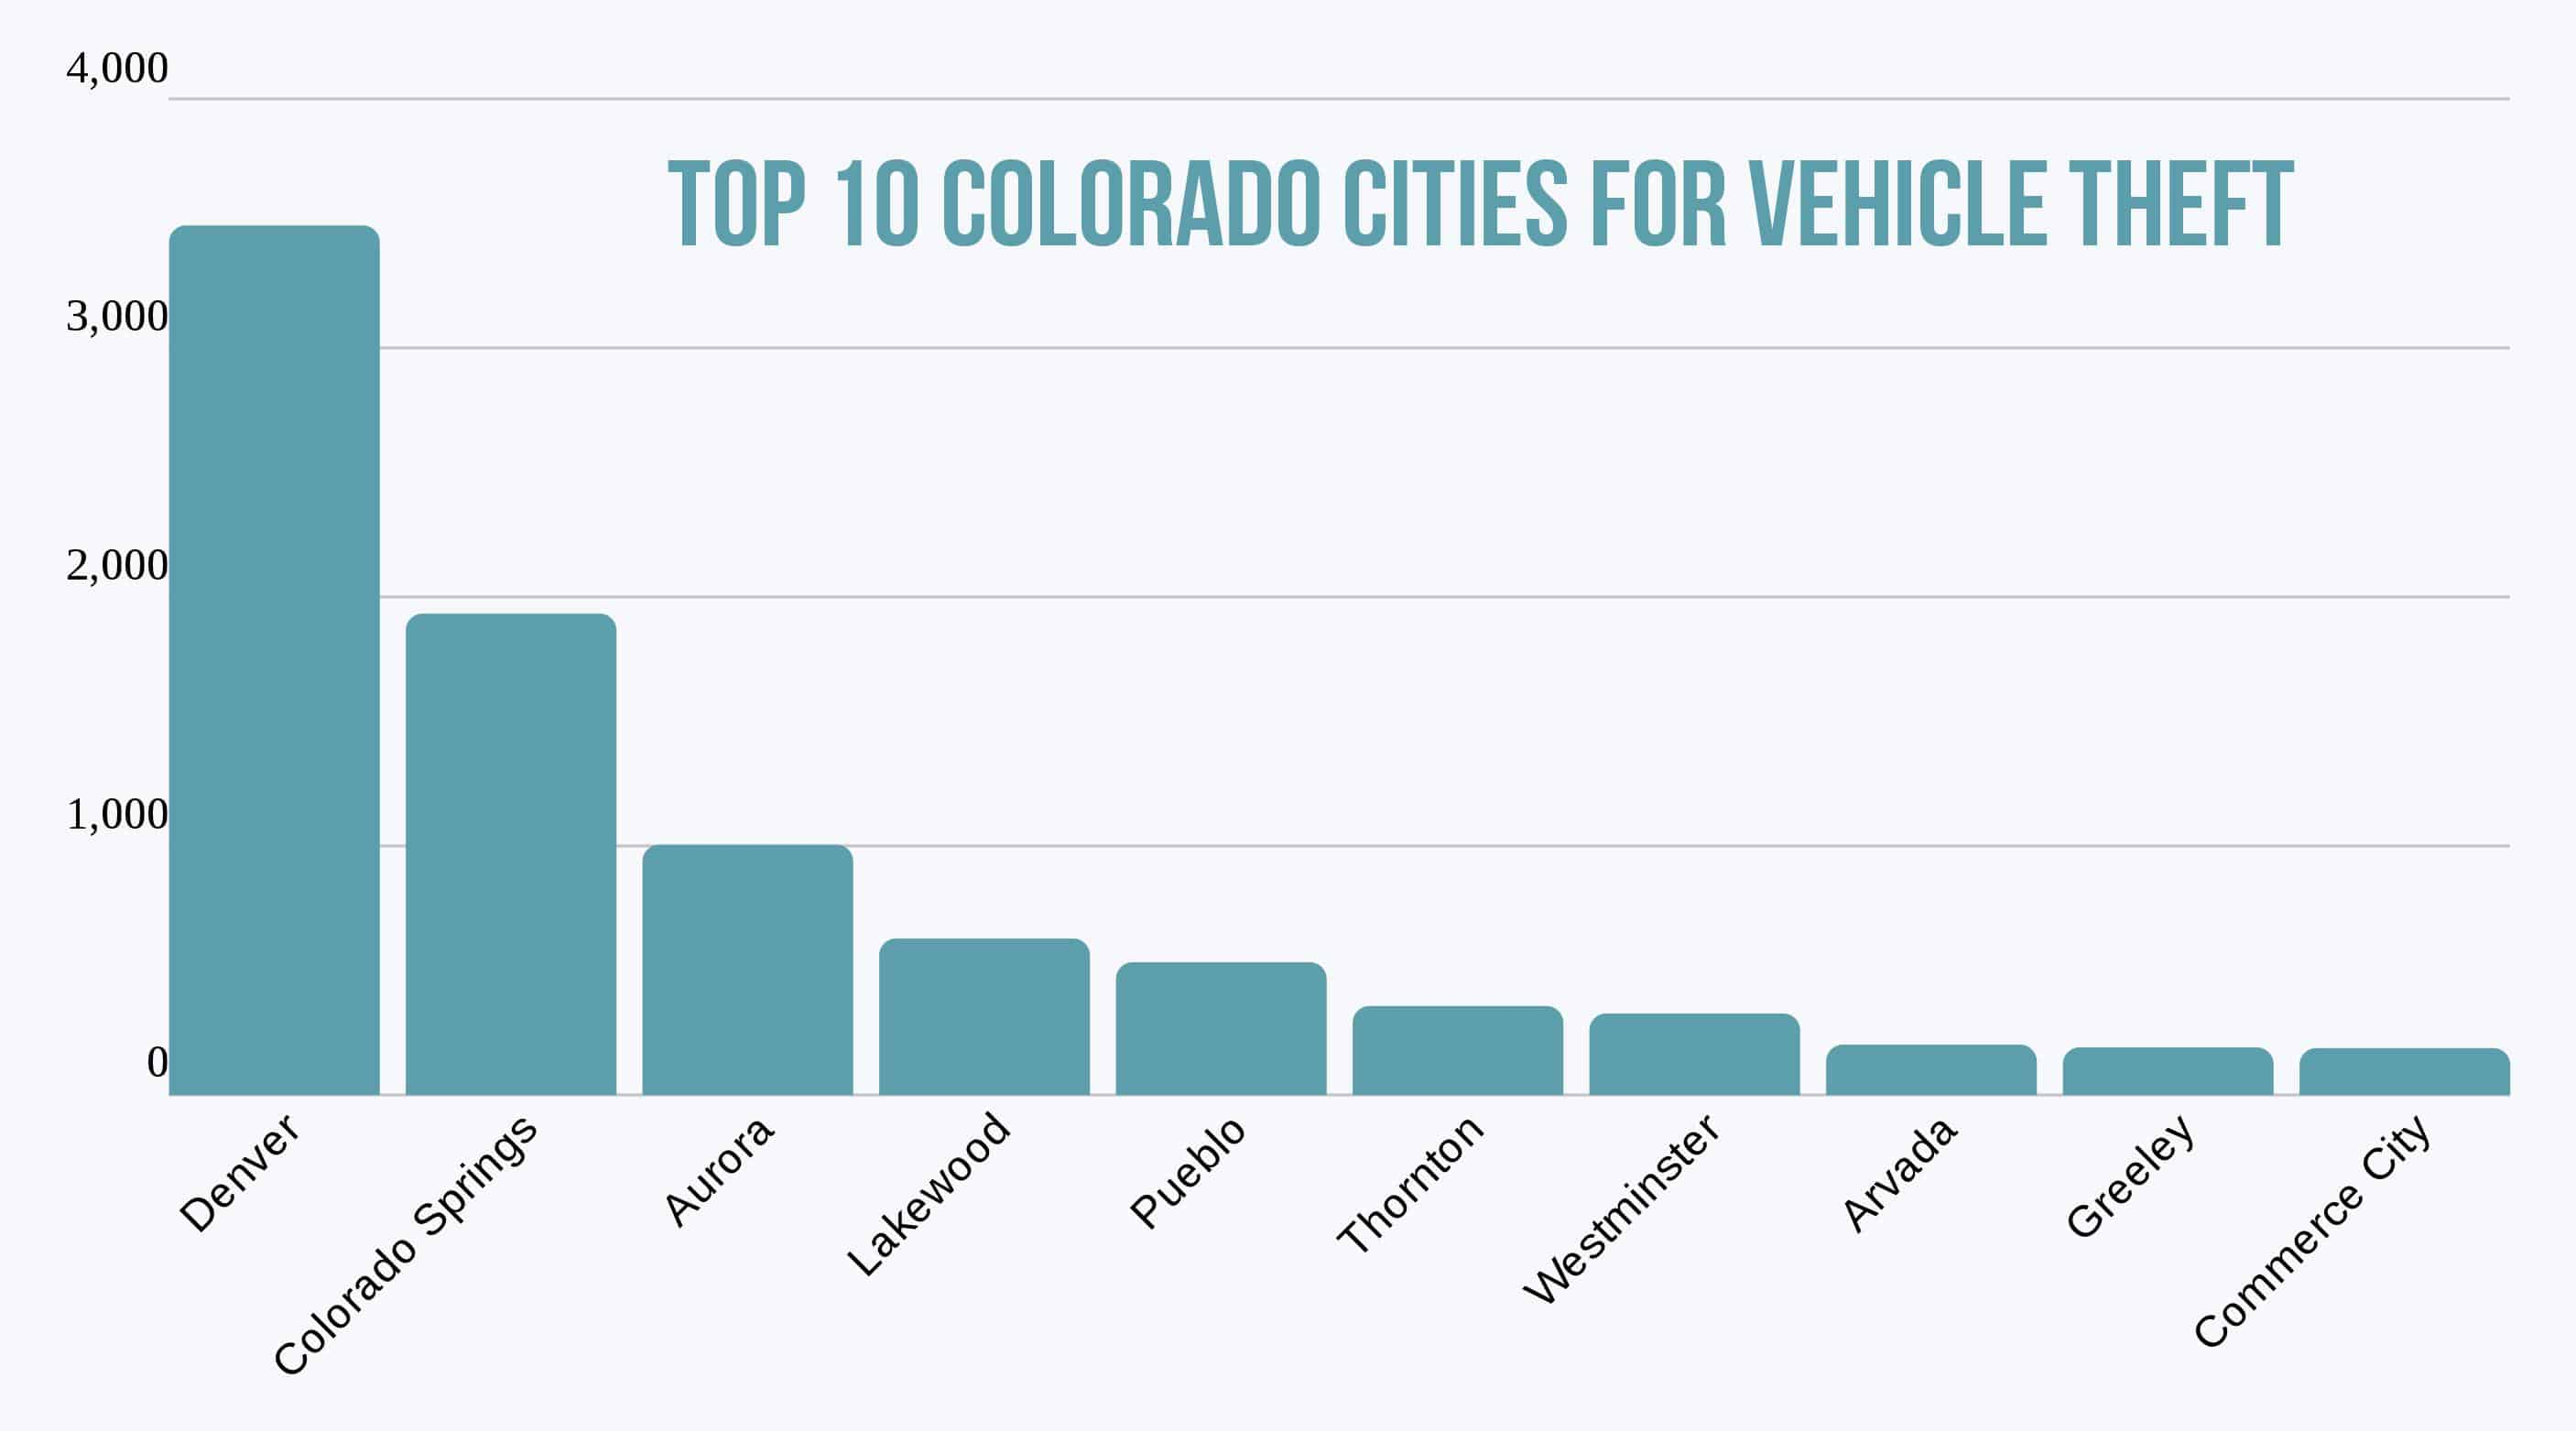 Bar chart of the top 10 Colorado cities for vehicle theft